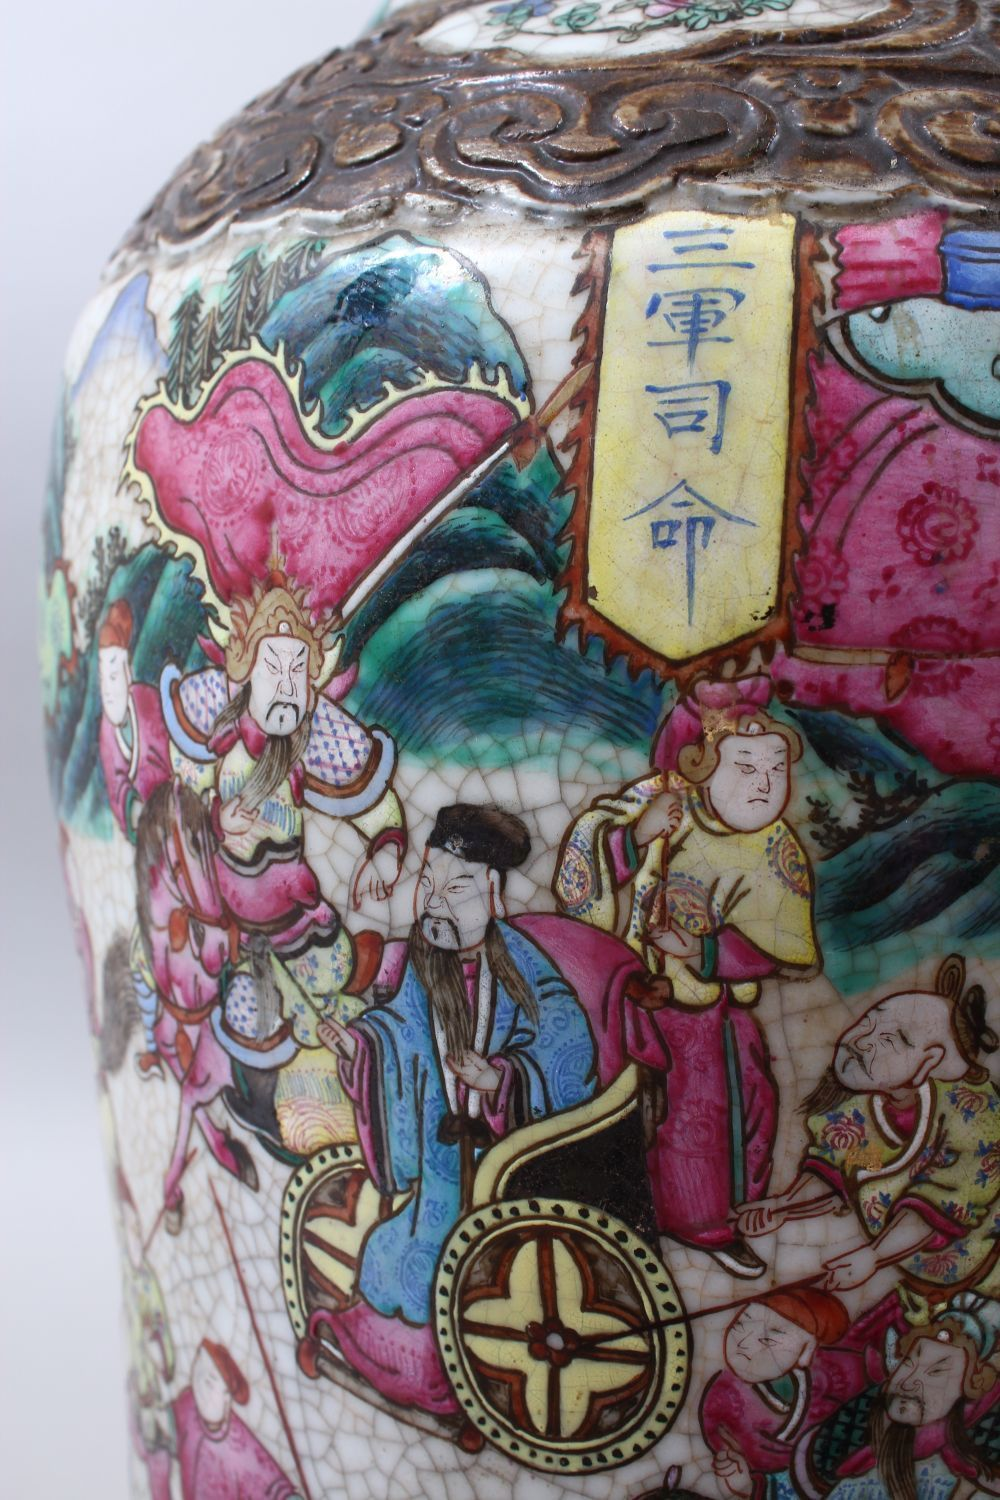 A 19TH CENTURY CHINESE FAMILLE ROSE CRACKLE GLAZED PORCELAIN VASE, painted with a battle scene, - Image 6 of 8